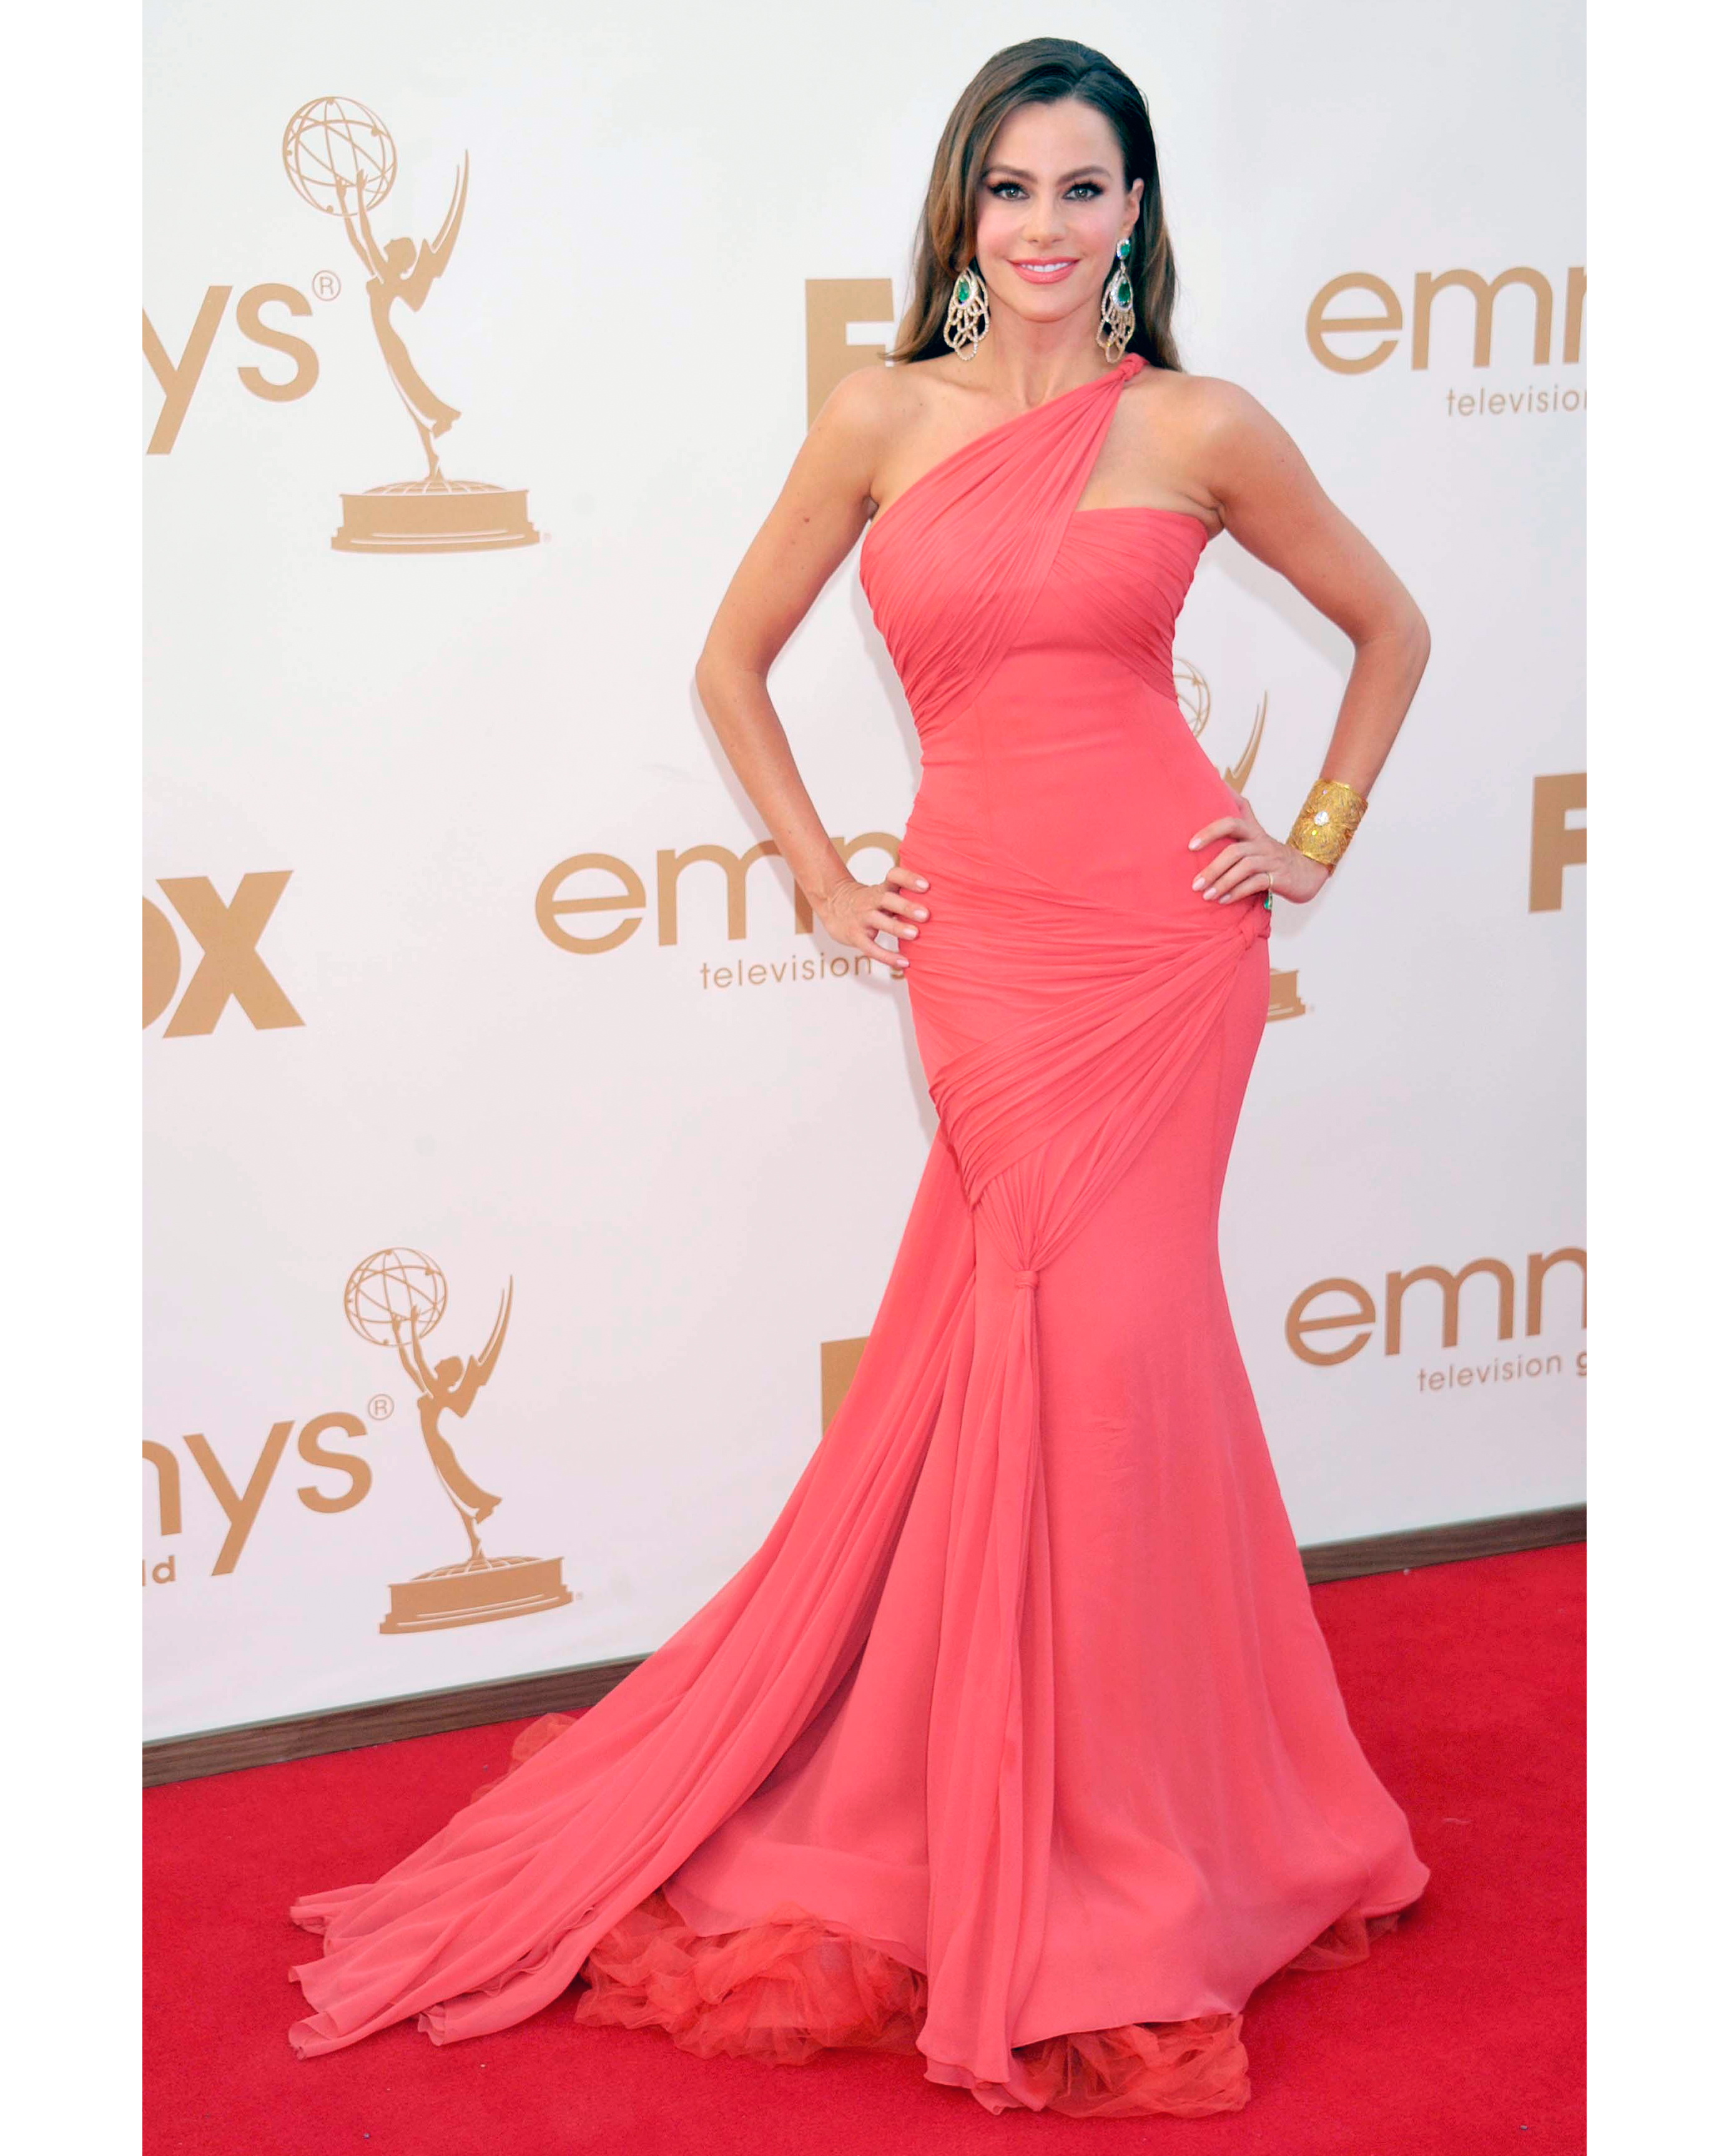 63rd Annual Primetime Emmy Awards